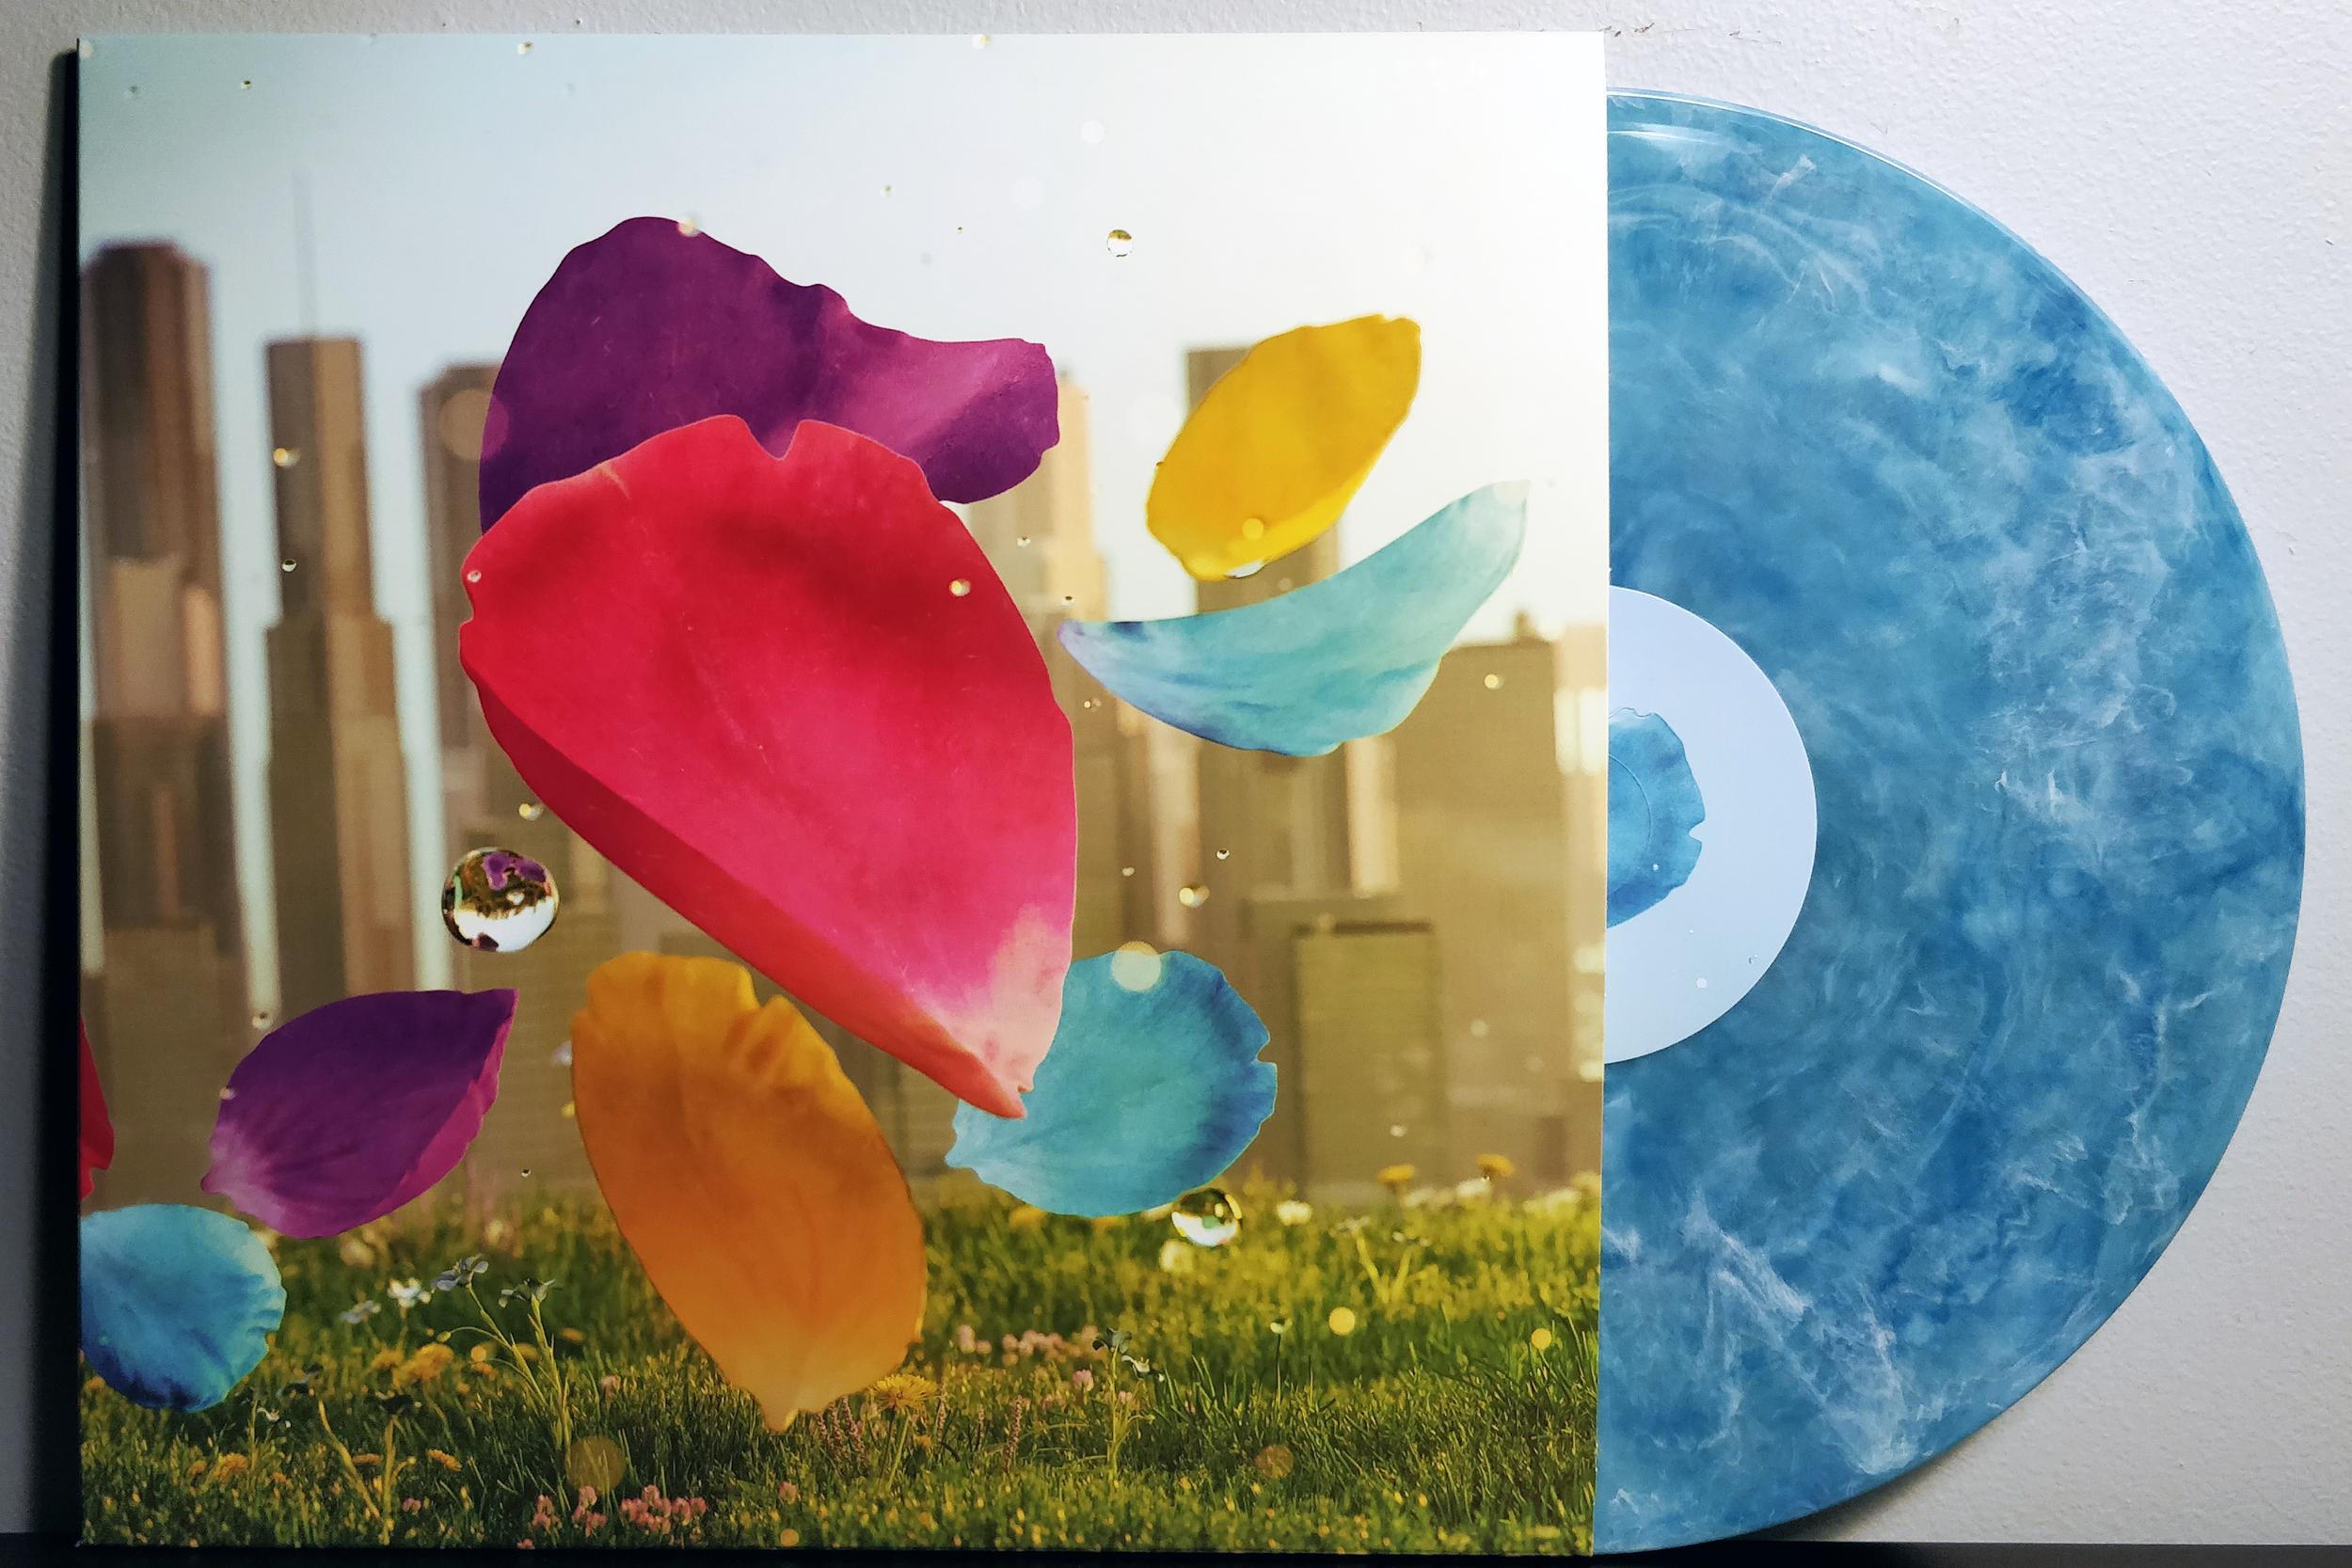 Flower  by Vincent Diamante pressed on blue marble & white with blue vinyl by iam8bit